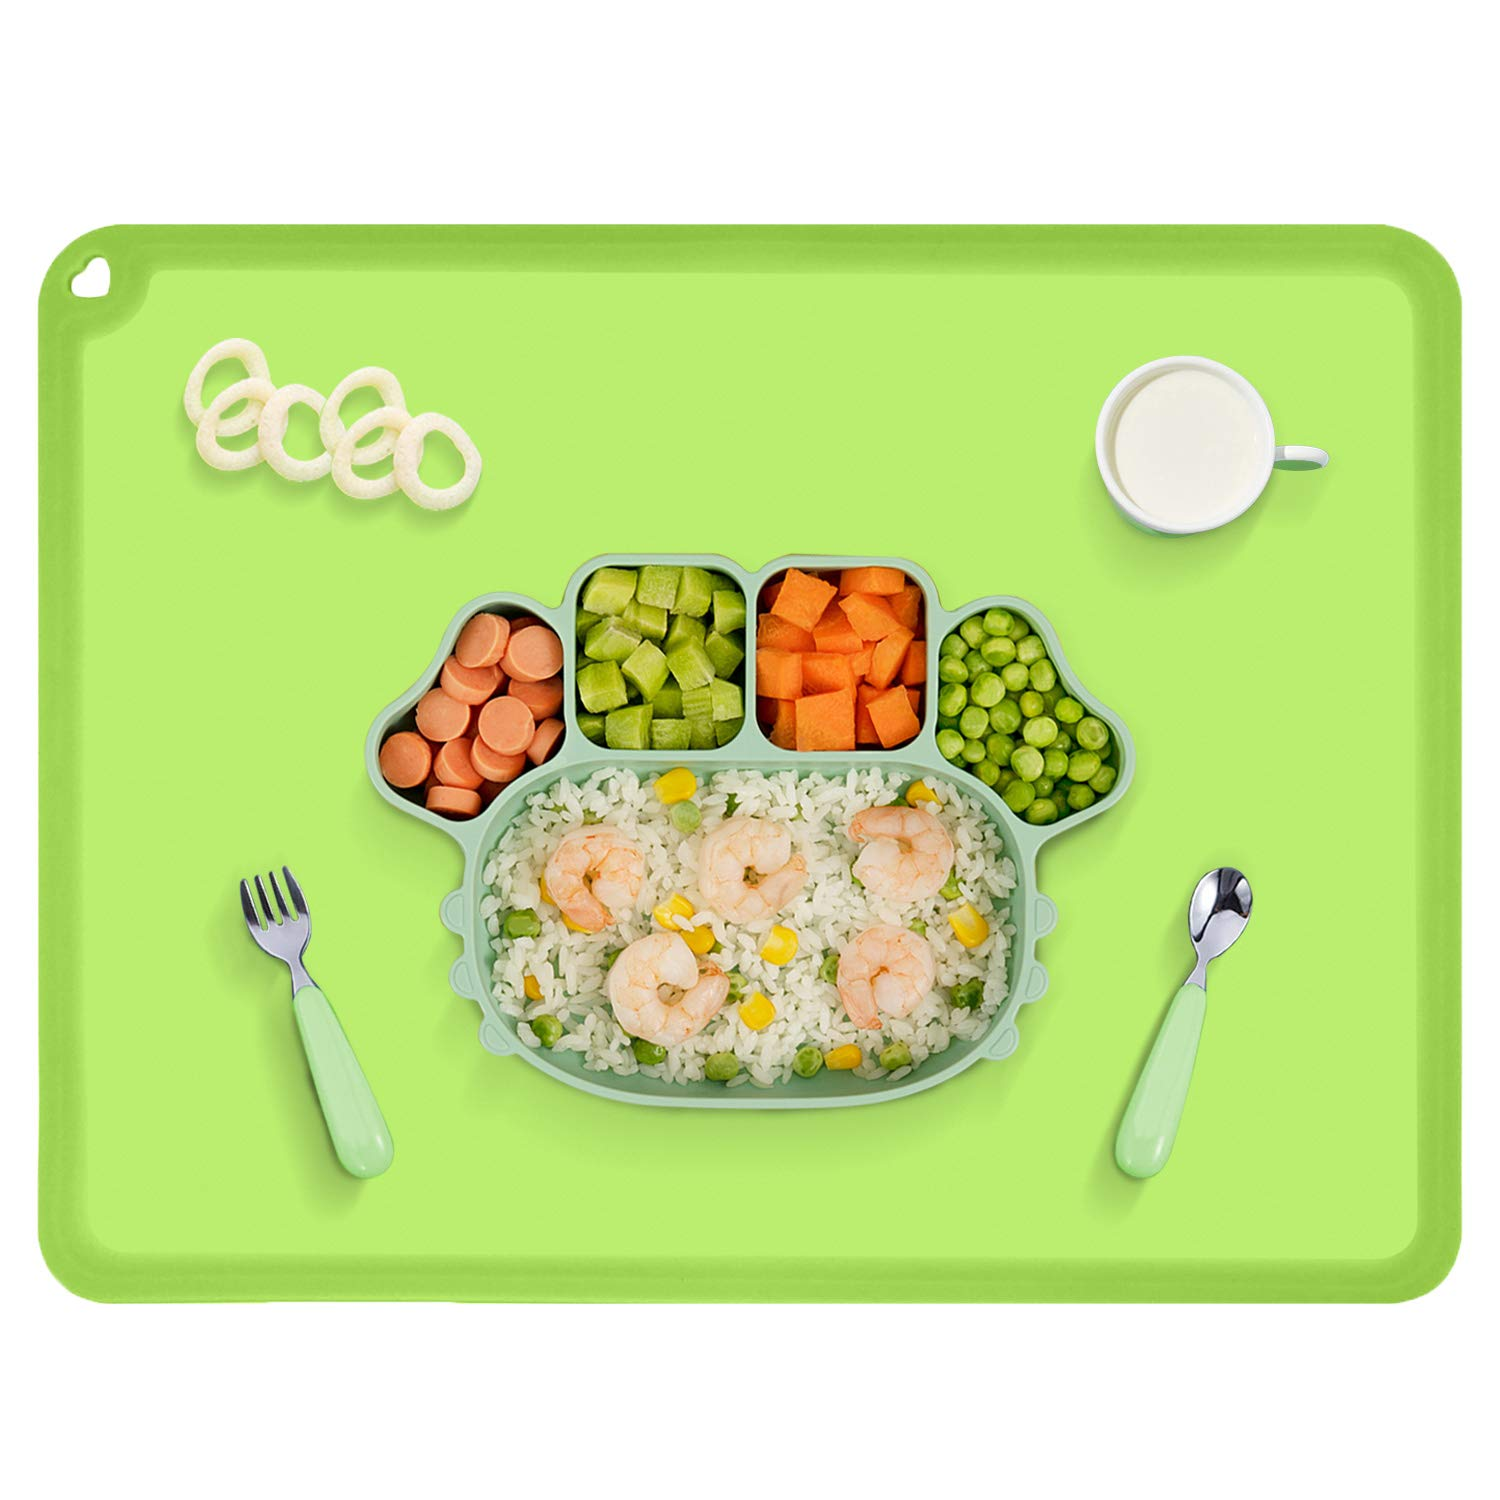 Silicone Kids Placemat, BPA Free Baby Placemat for Kids, Reusable Non-Slip Food Mat Table Topper for Baby Toddler, Green